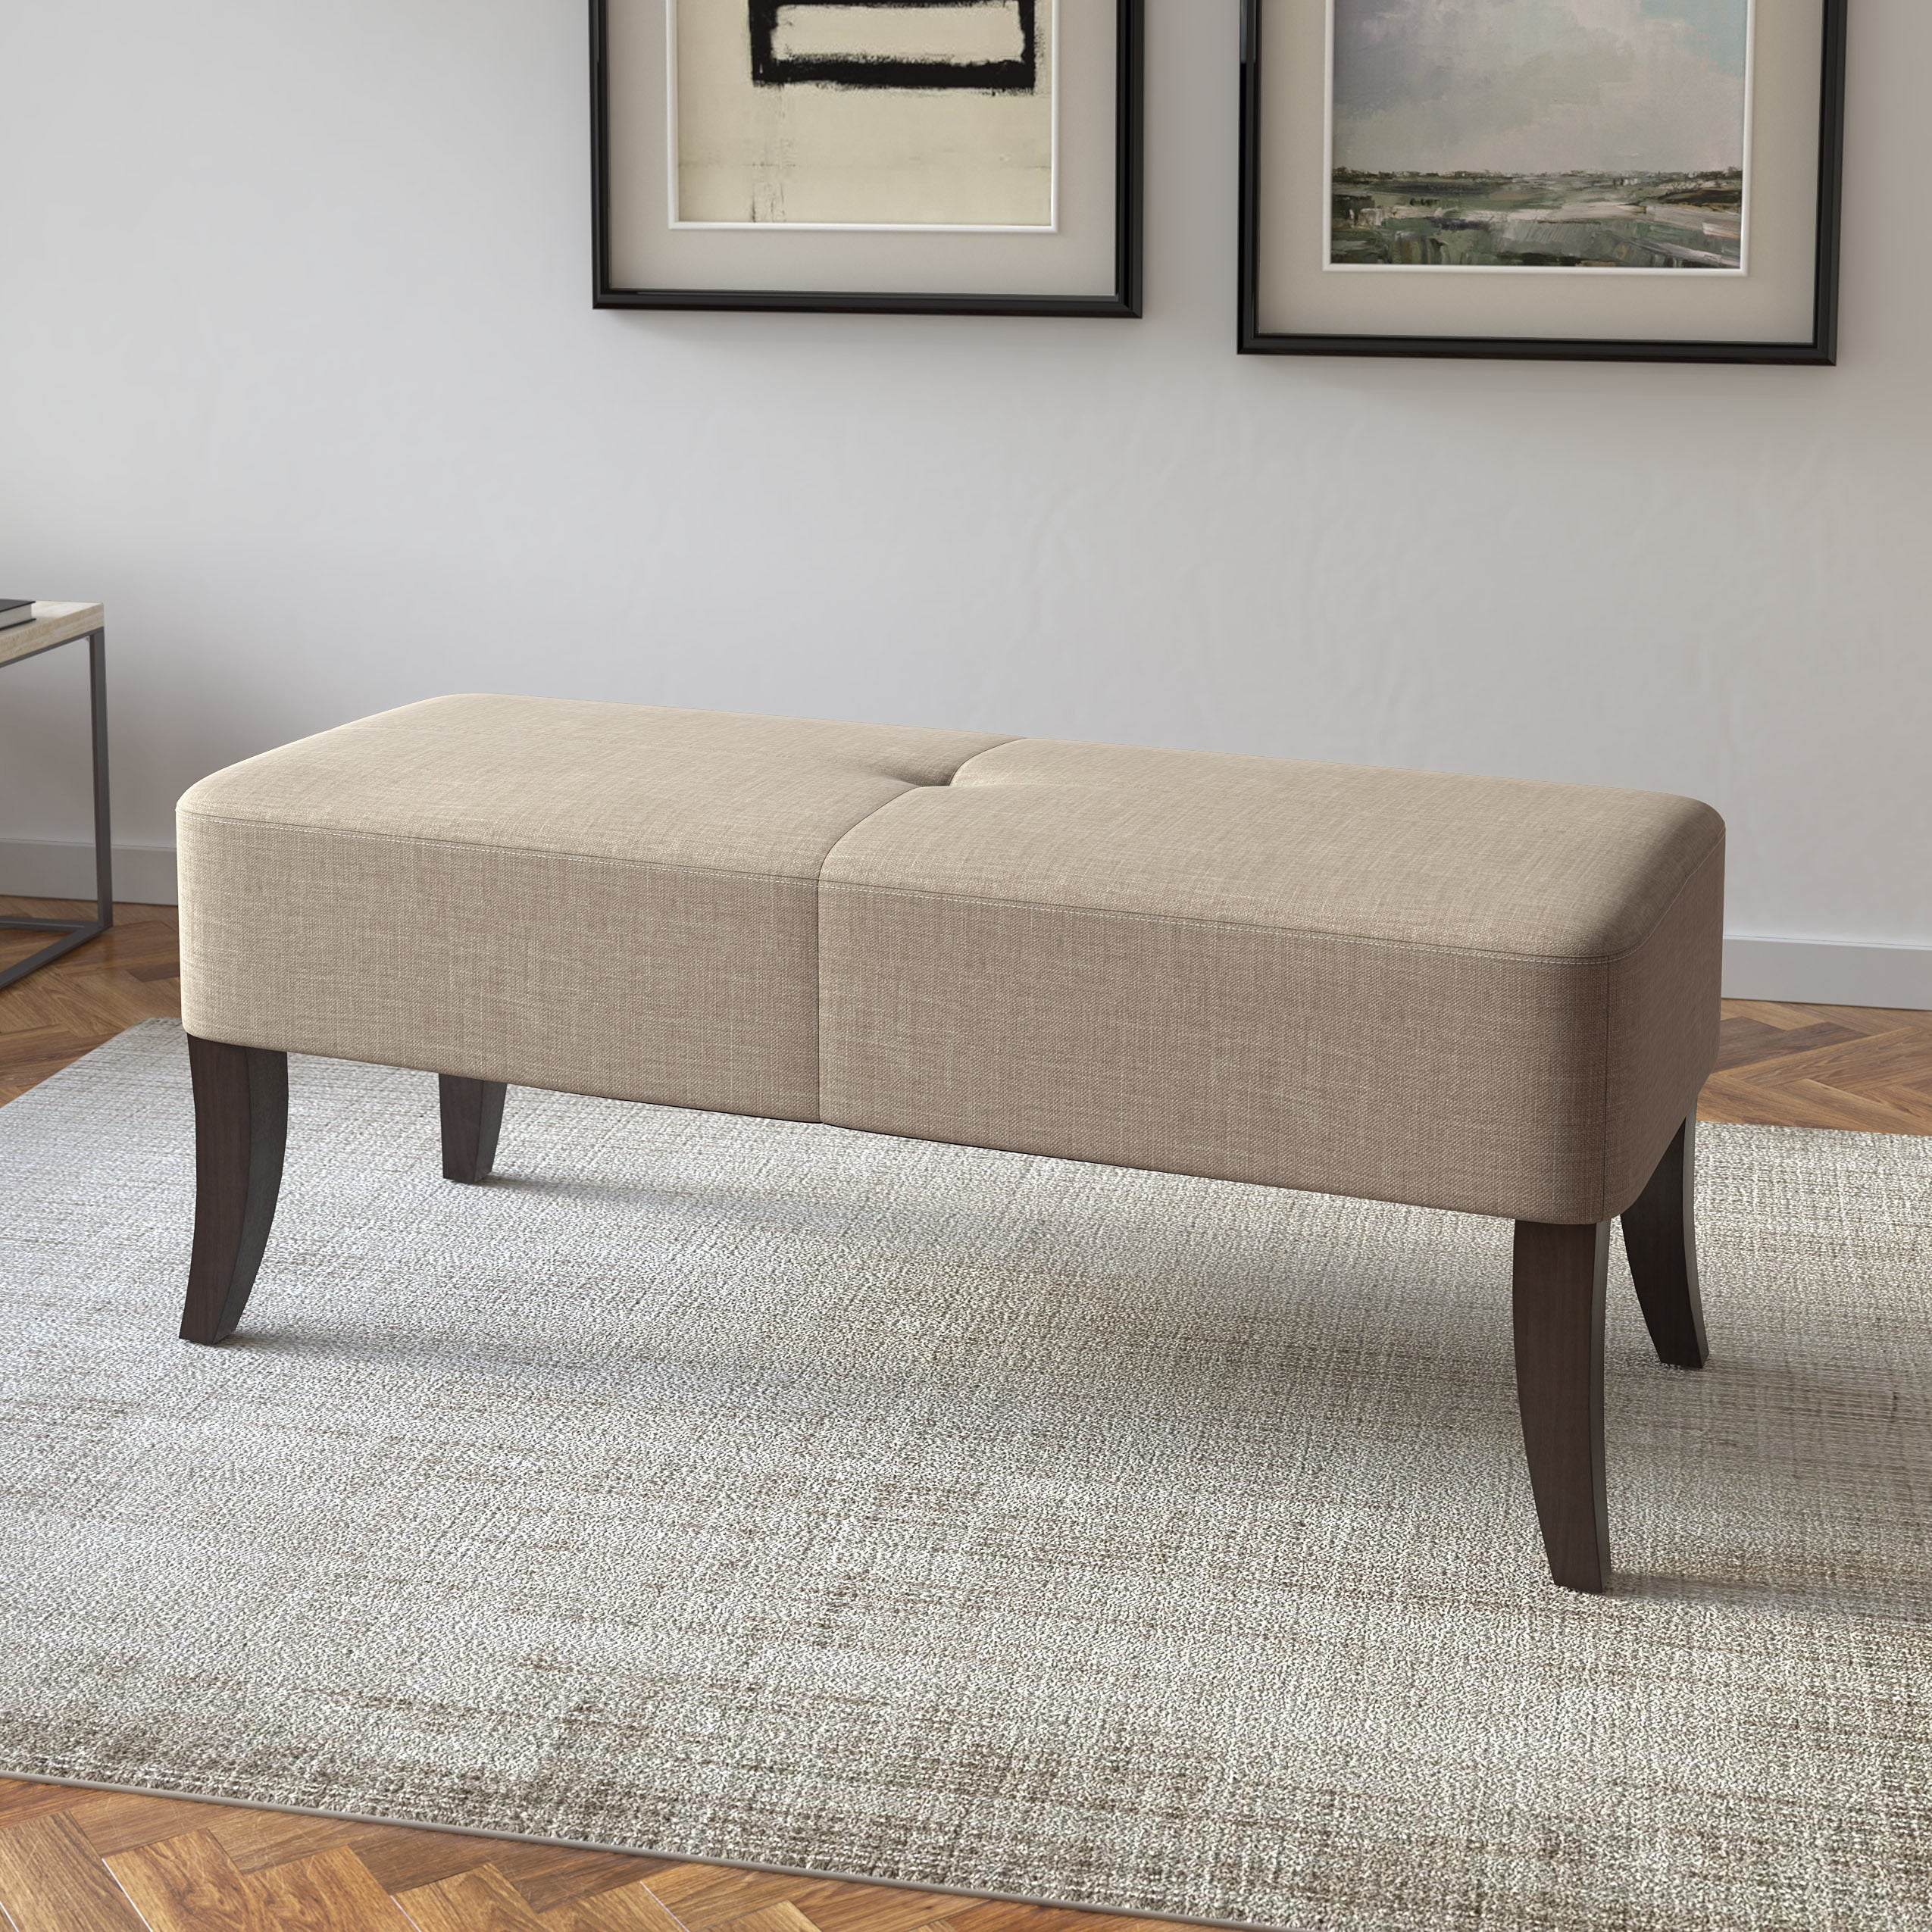 Shop Porch Den Amanda 46 Inch Upholstered Bench Free Shipping